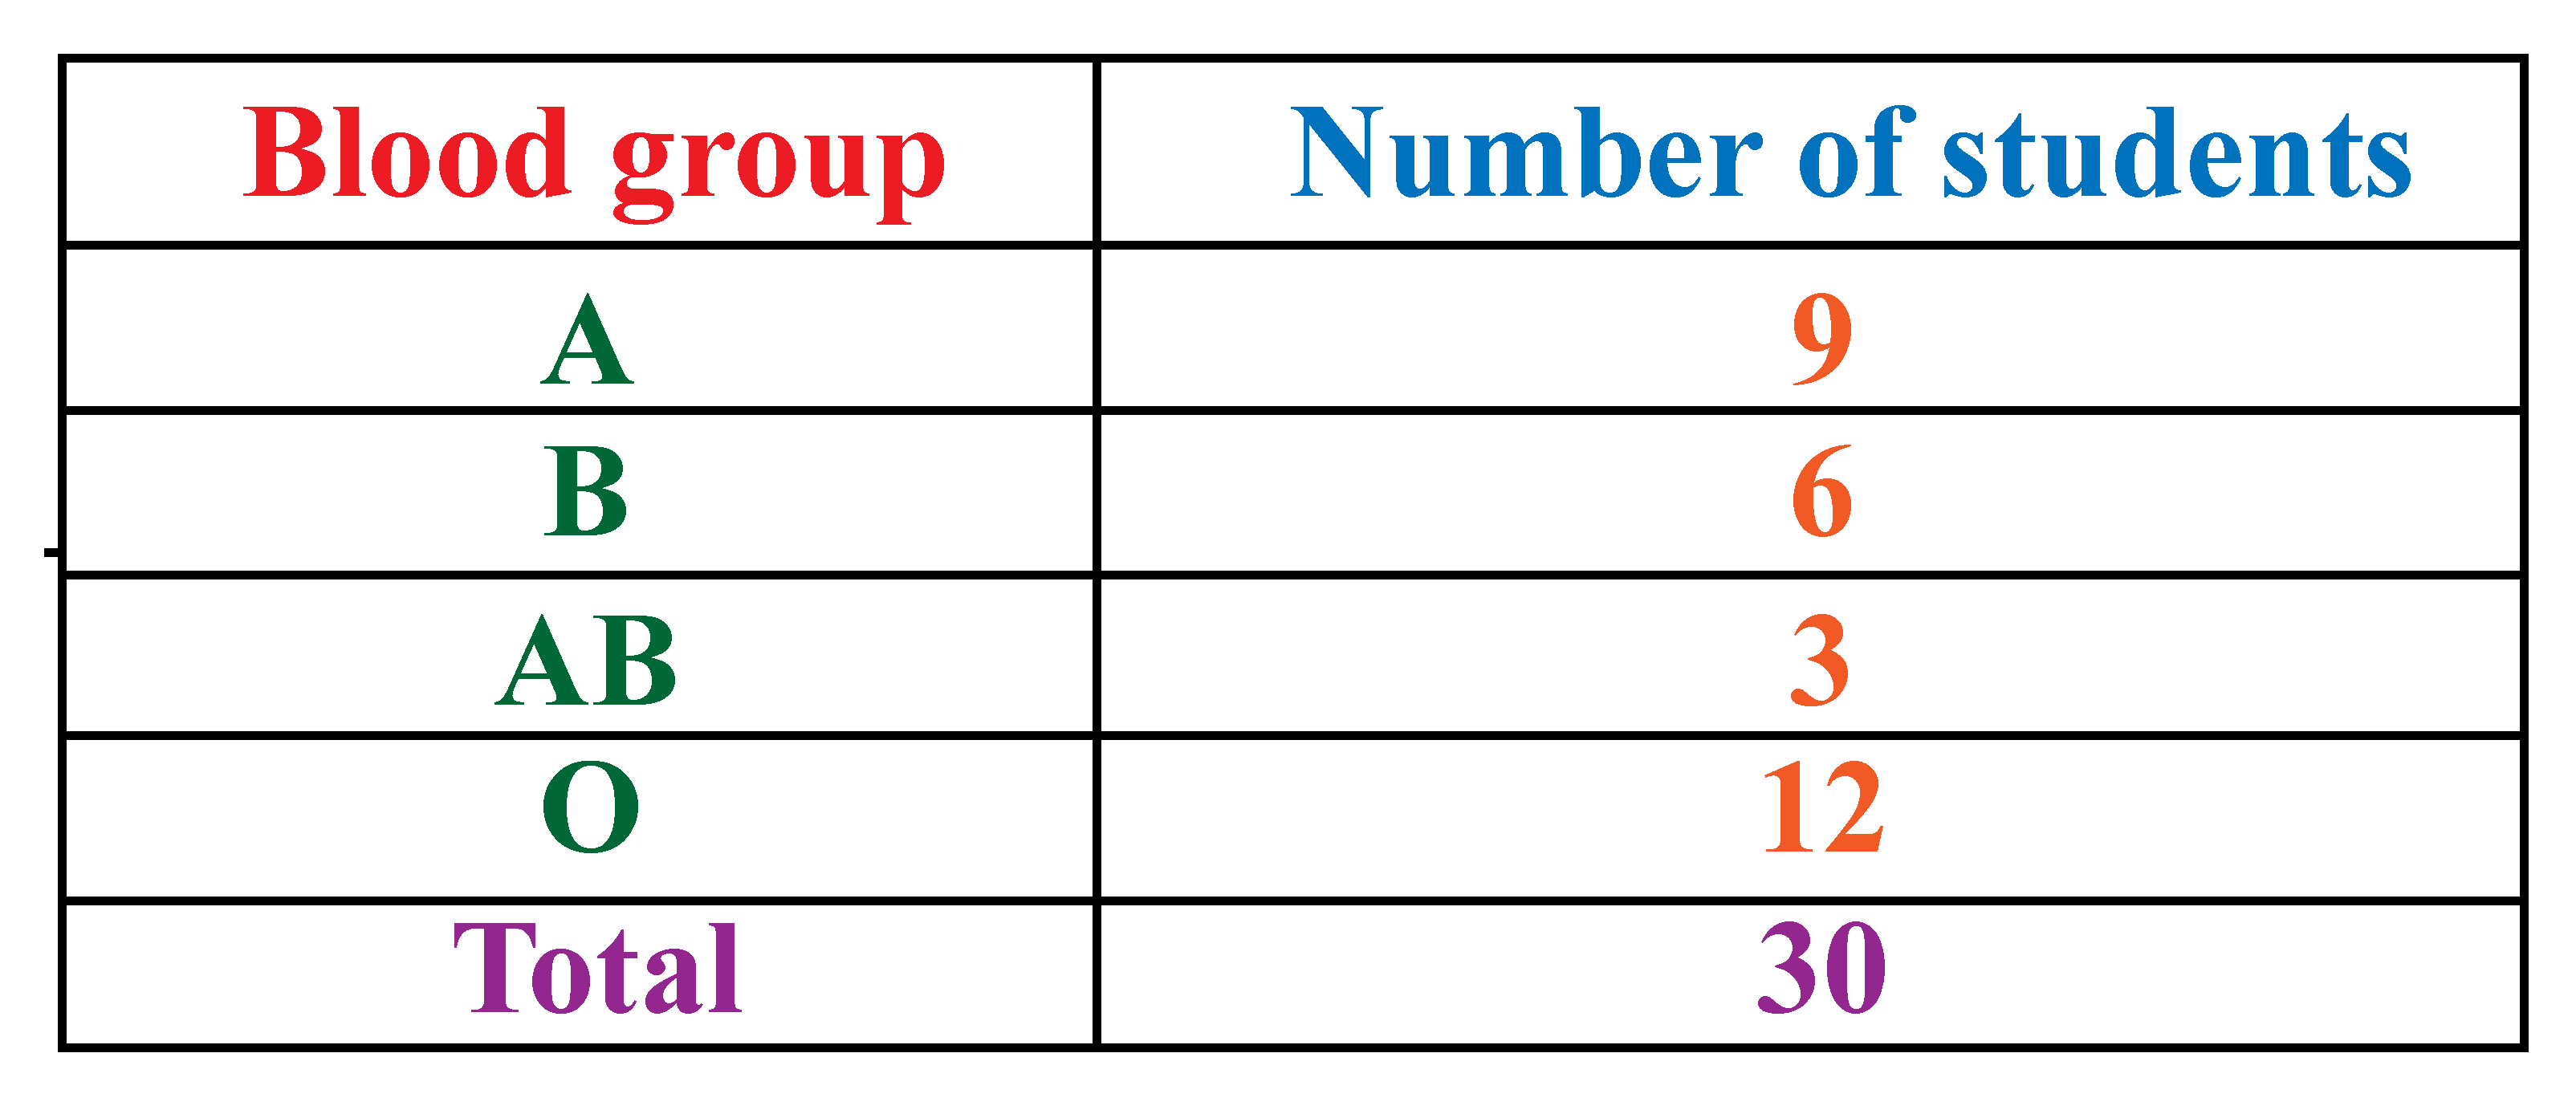 Frequency distribution table of the blood groups of students in a school.